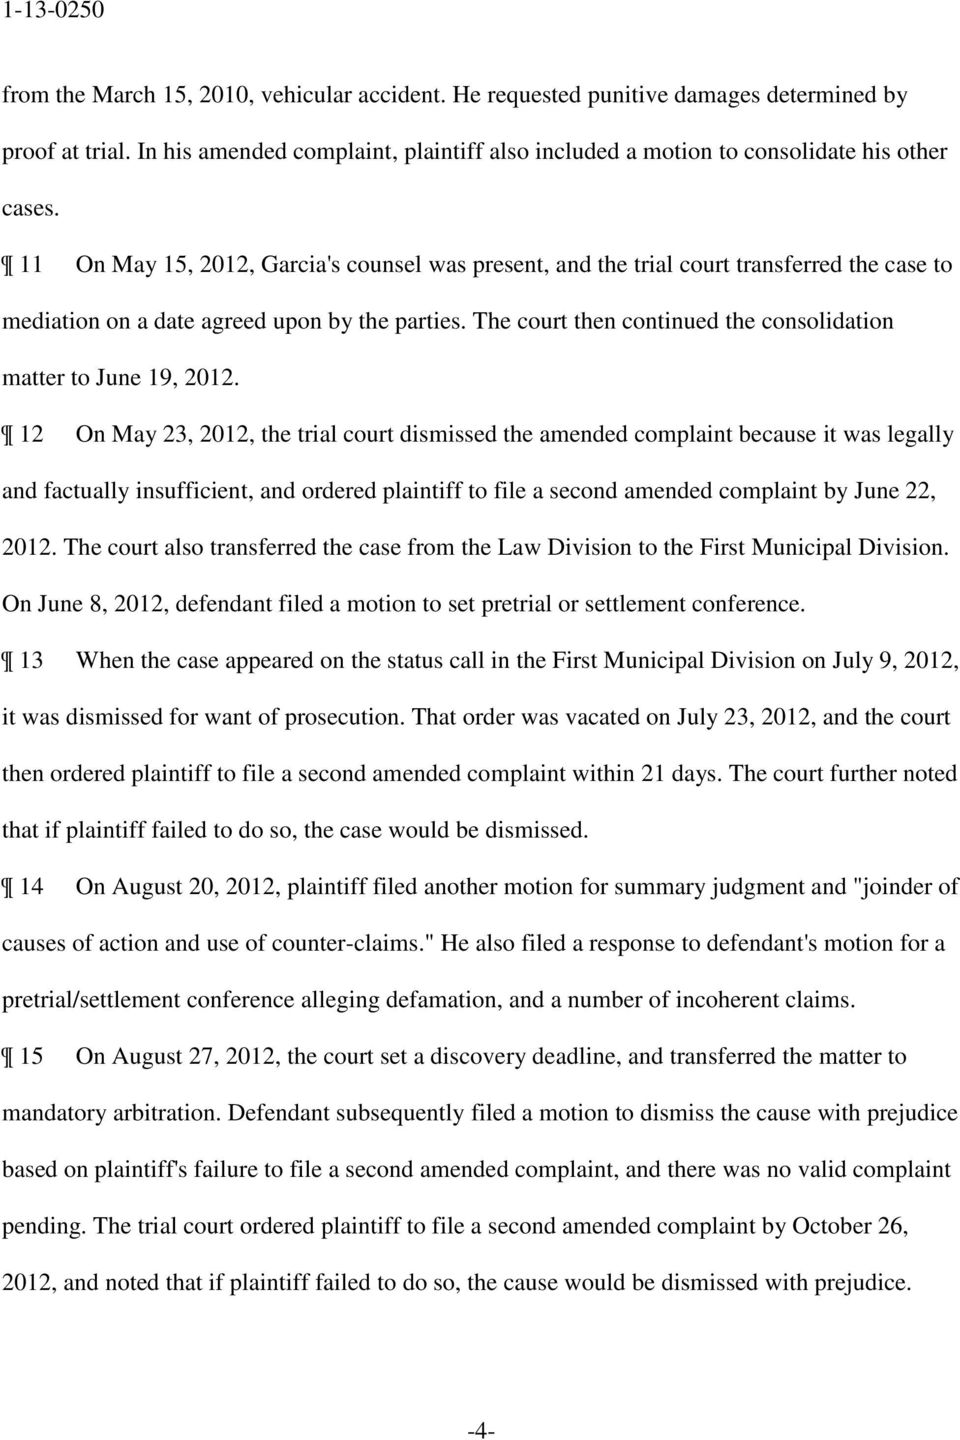 The court then continued the consolidation matter to June 19, 2012.